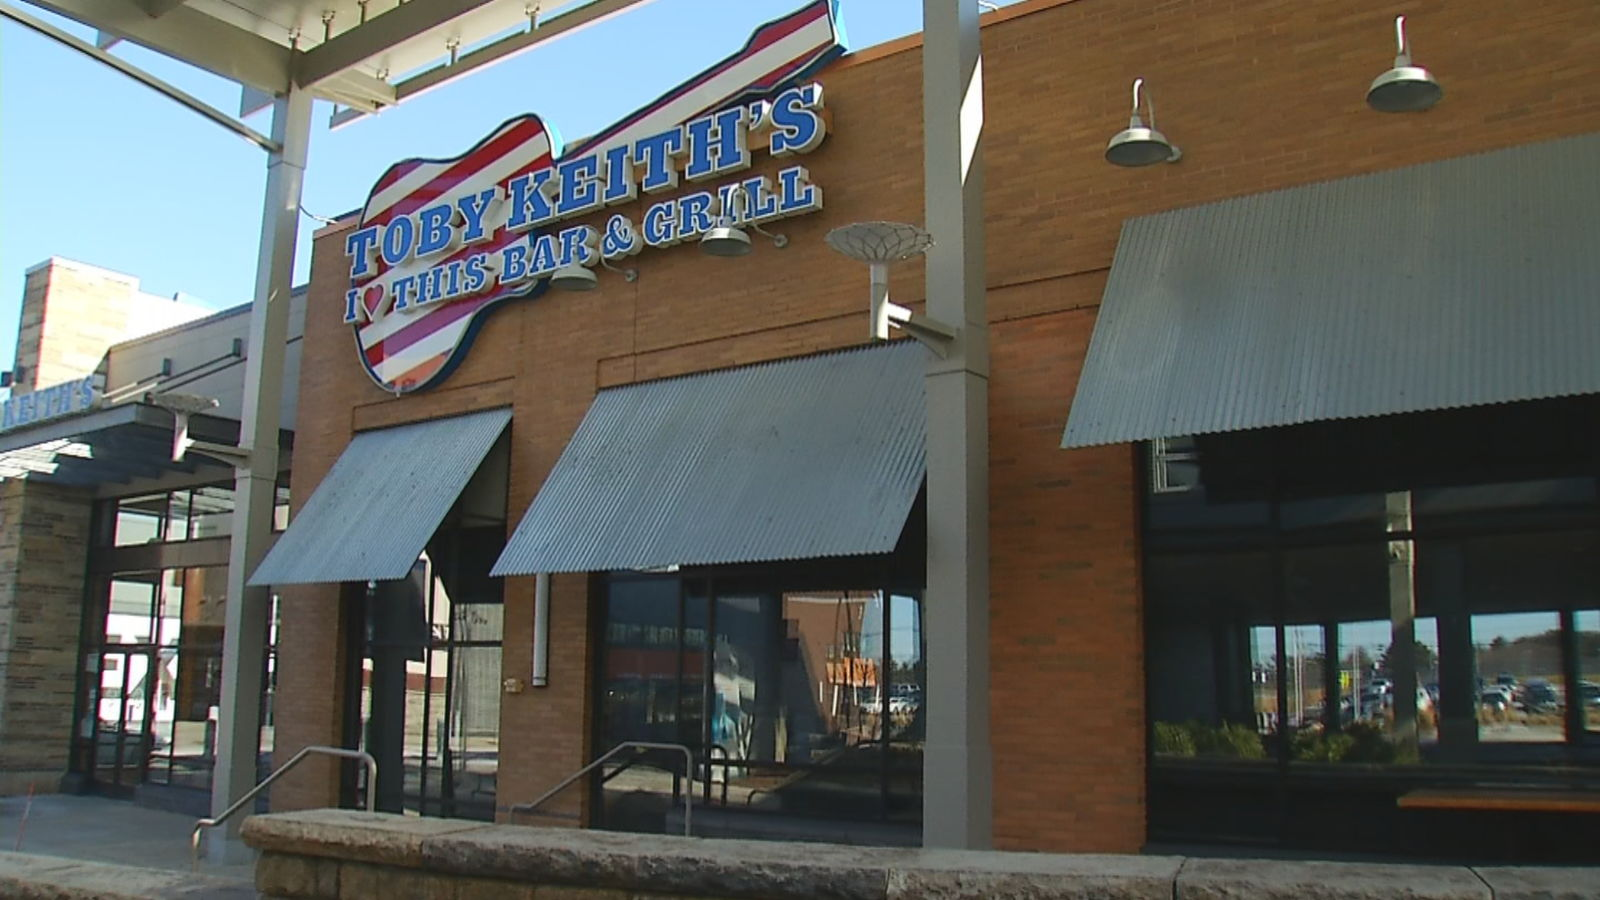 Toby Keith's I Love This Bar and Grill at Patriot Place in Foxborough has permanently closed. (WJAR)